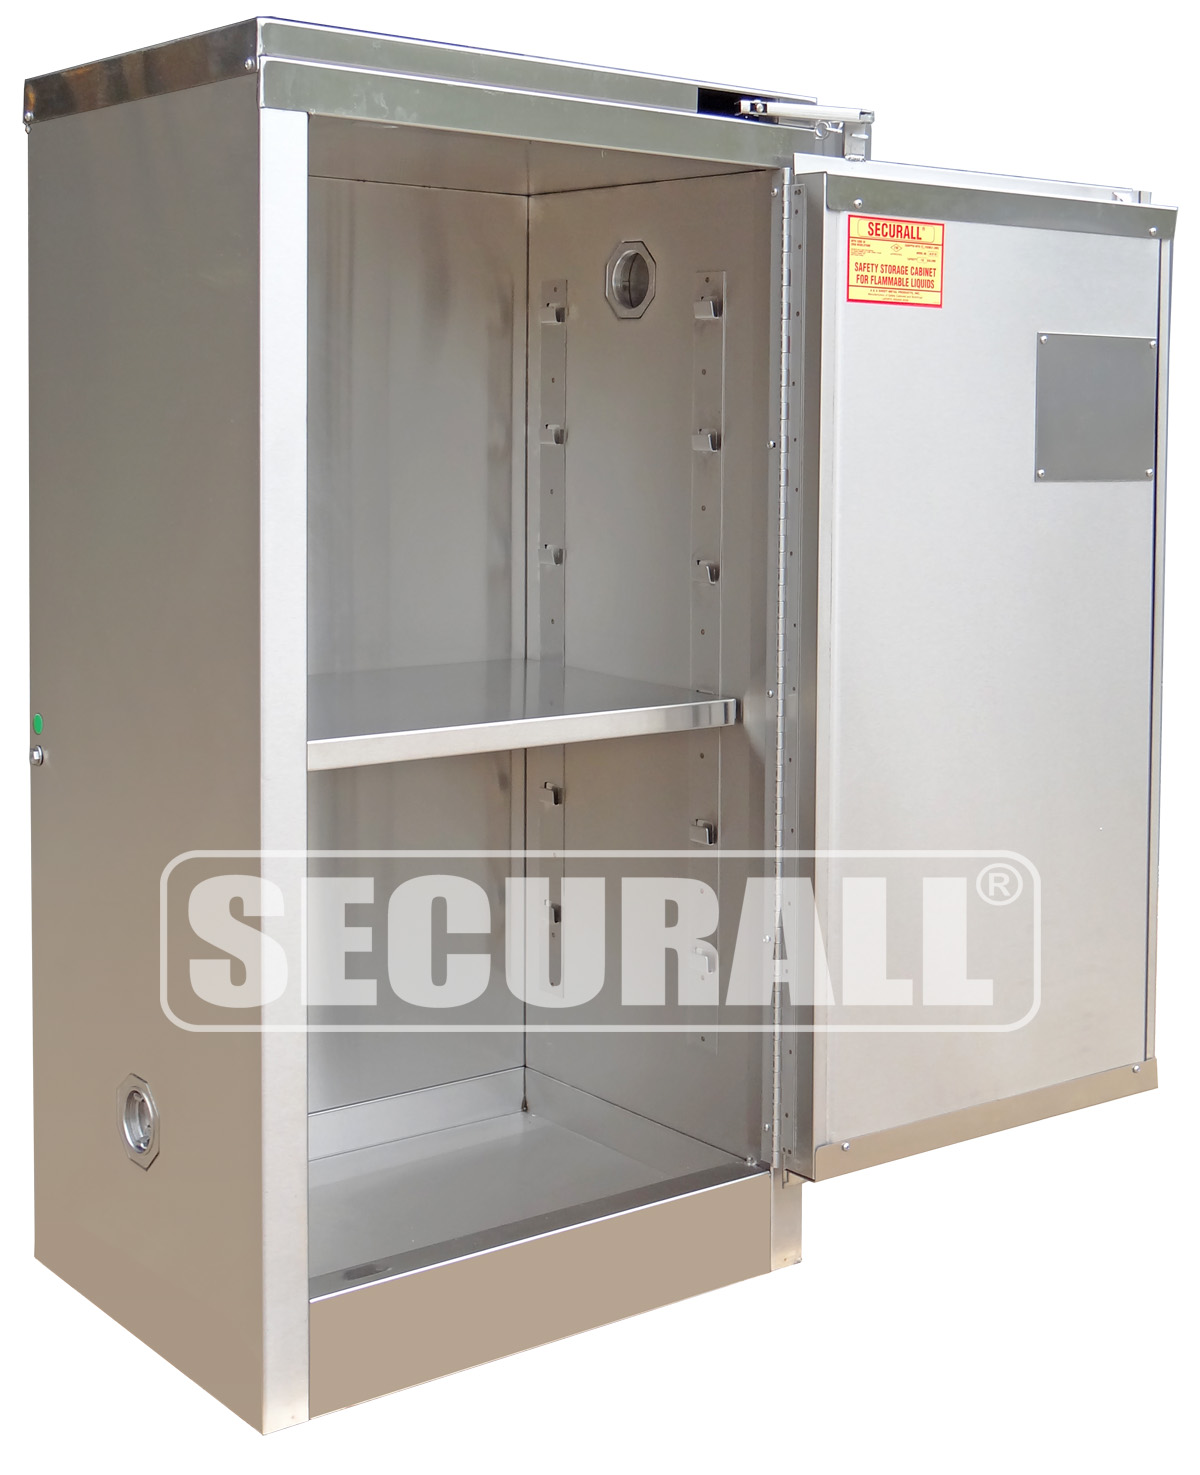 Securall stainless steel storage cabinets for flammables and hazardous materials stainless - Stainless steel kitchens cabinets ...